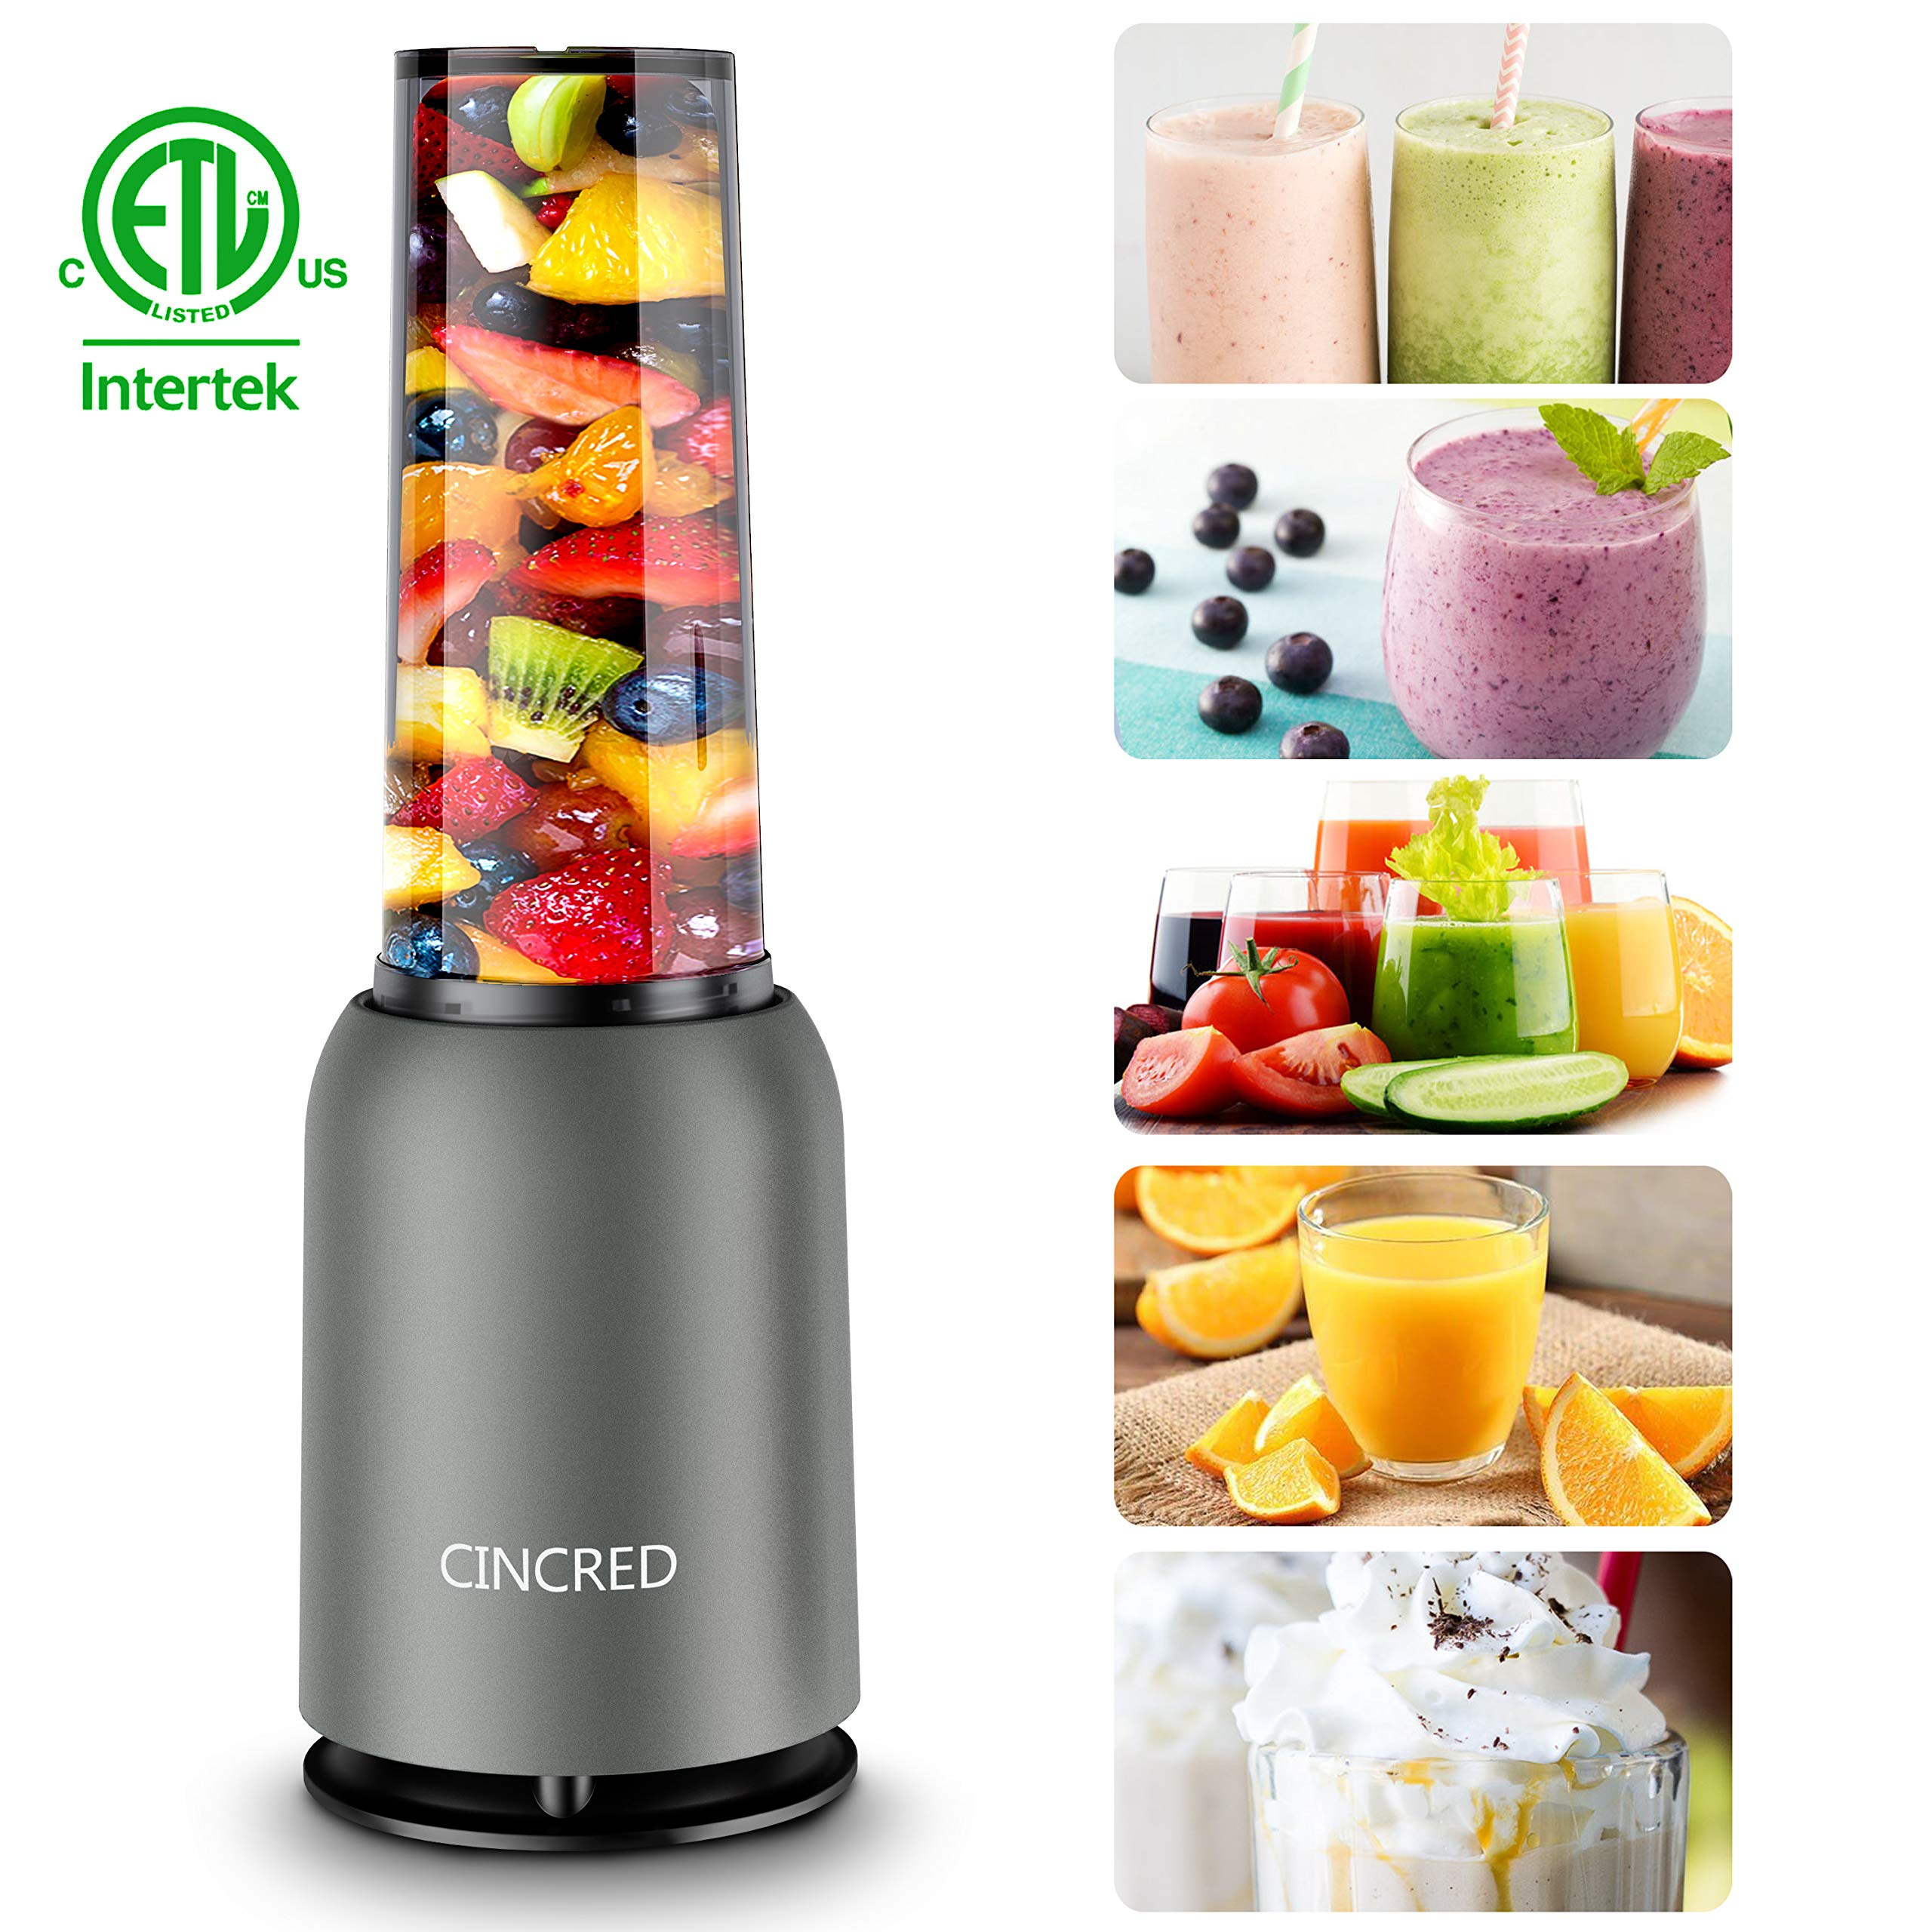 Updated 2019 Version Professional Personal Countertop Blender for Milkshake, Fruit Vegetables Drinks, Ice, Small Mini Portable Single Food Bullet Blenders Processor Shake Mixer Maker with Cup for Home Kitchen,15 Ounce by Cincred